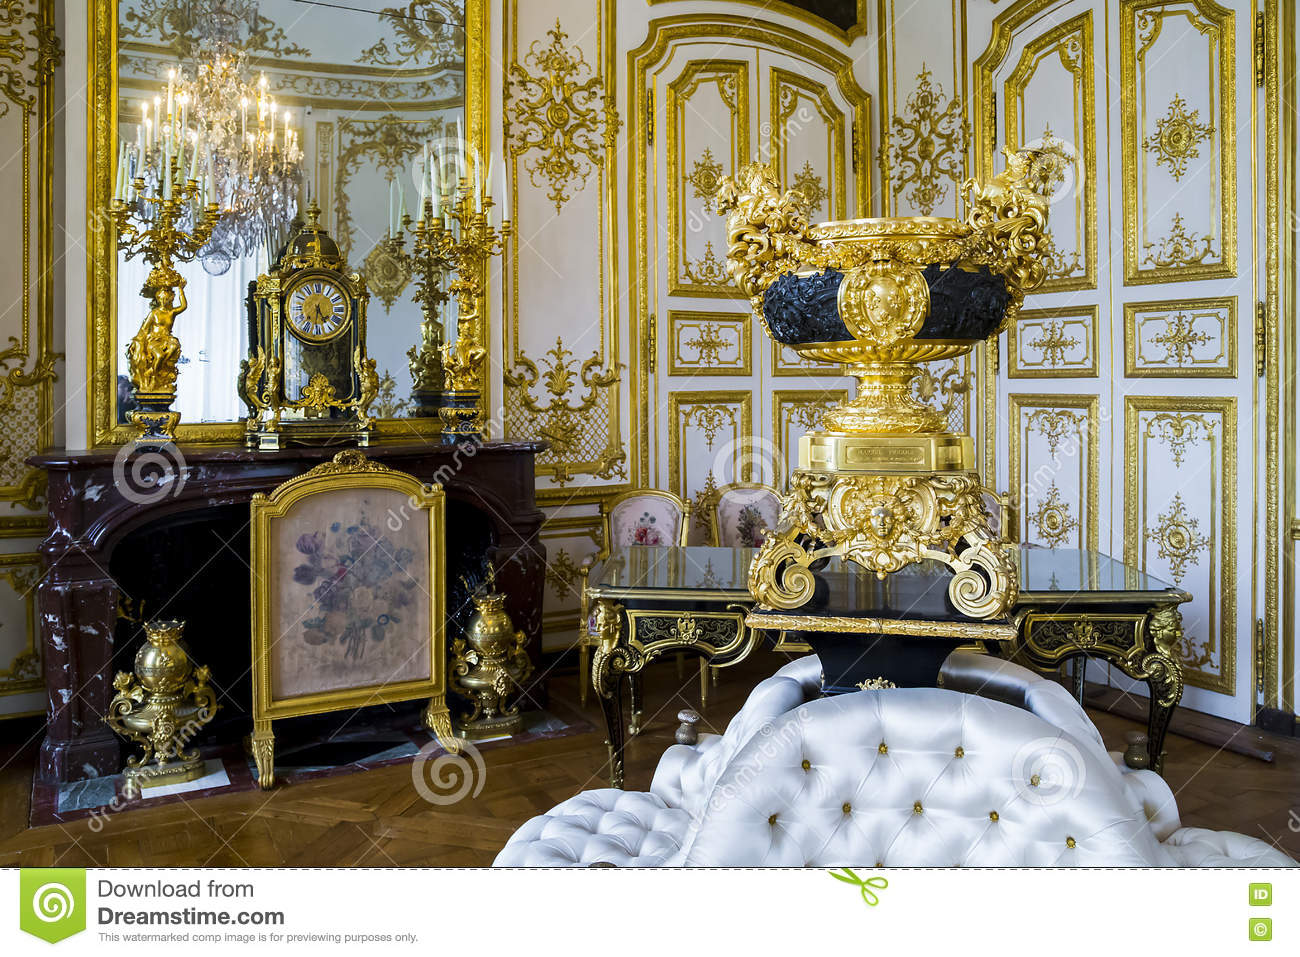 The interiors of the castle Chantilly